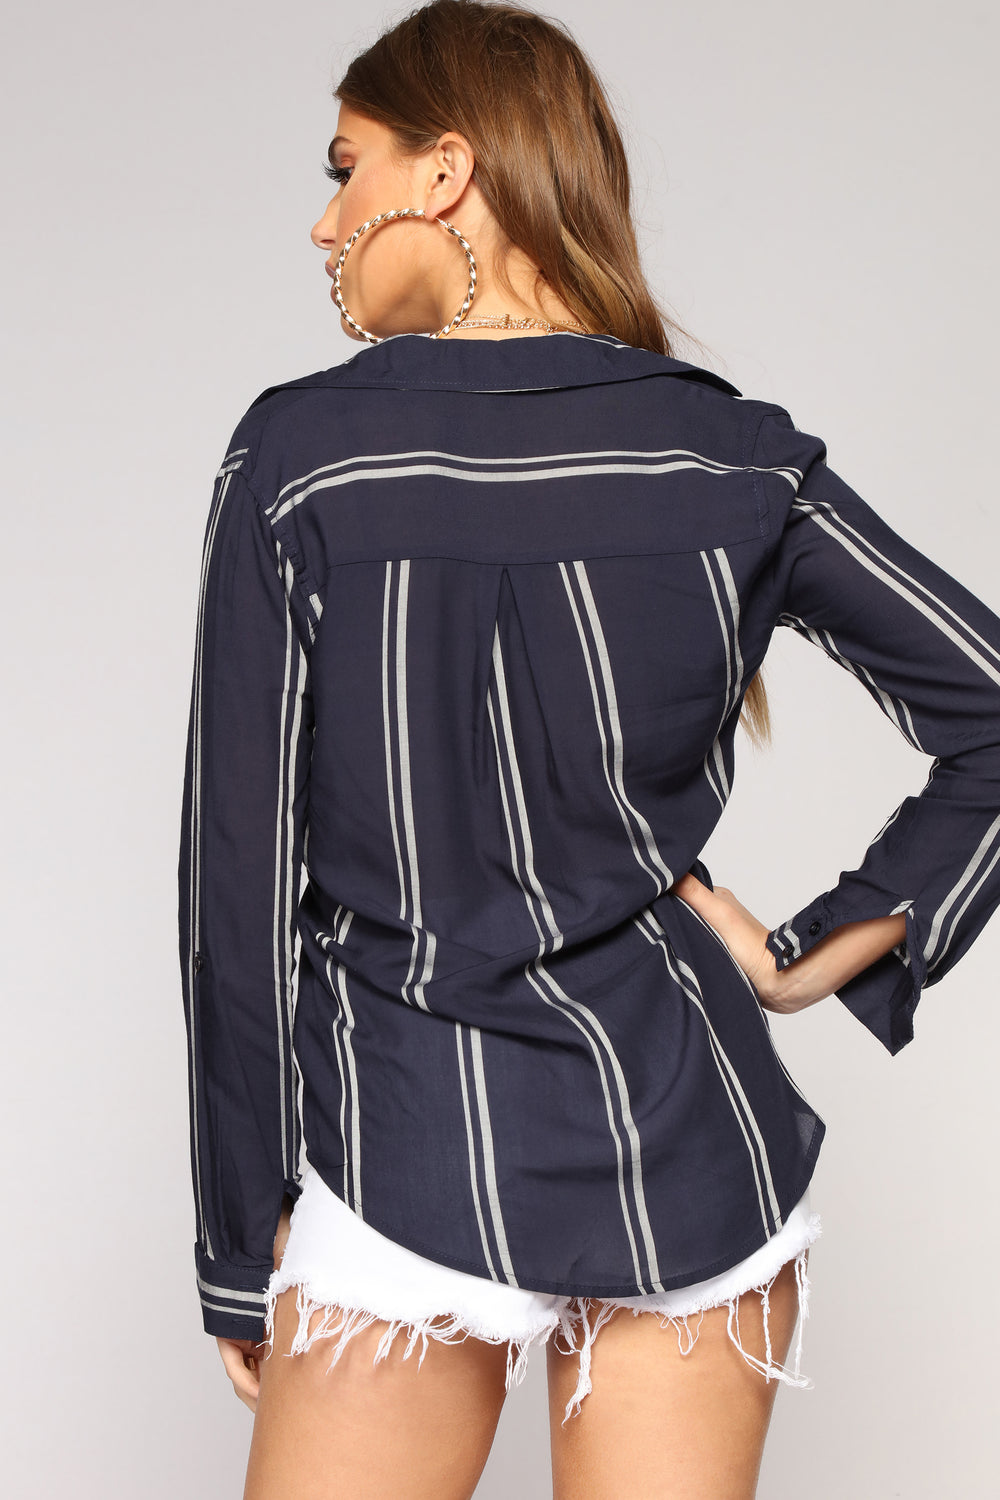 Time To Work Button Down Top - Navy